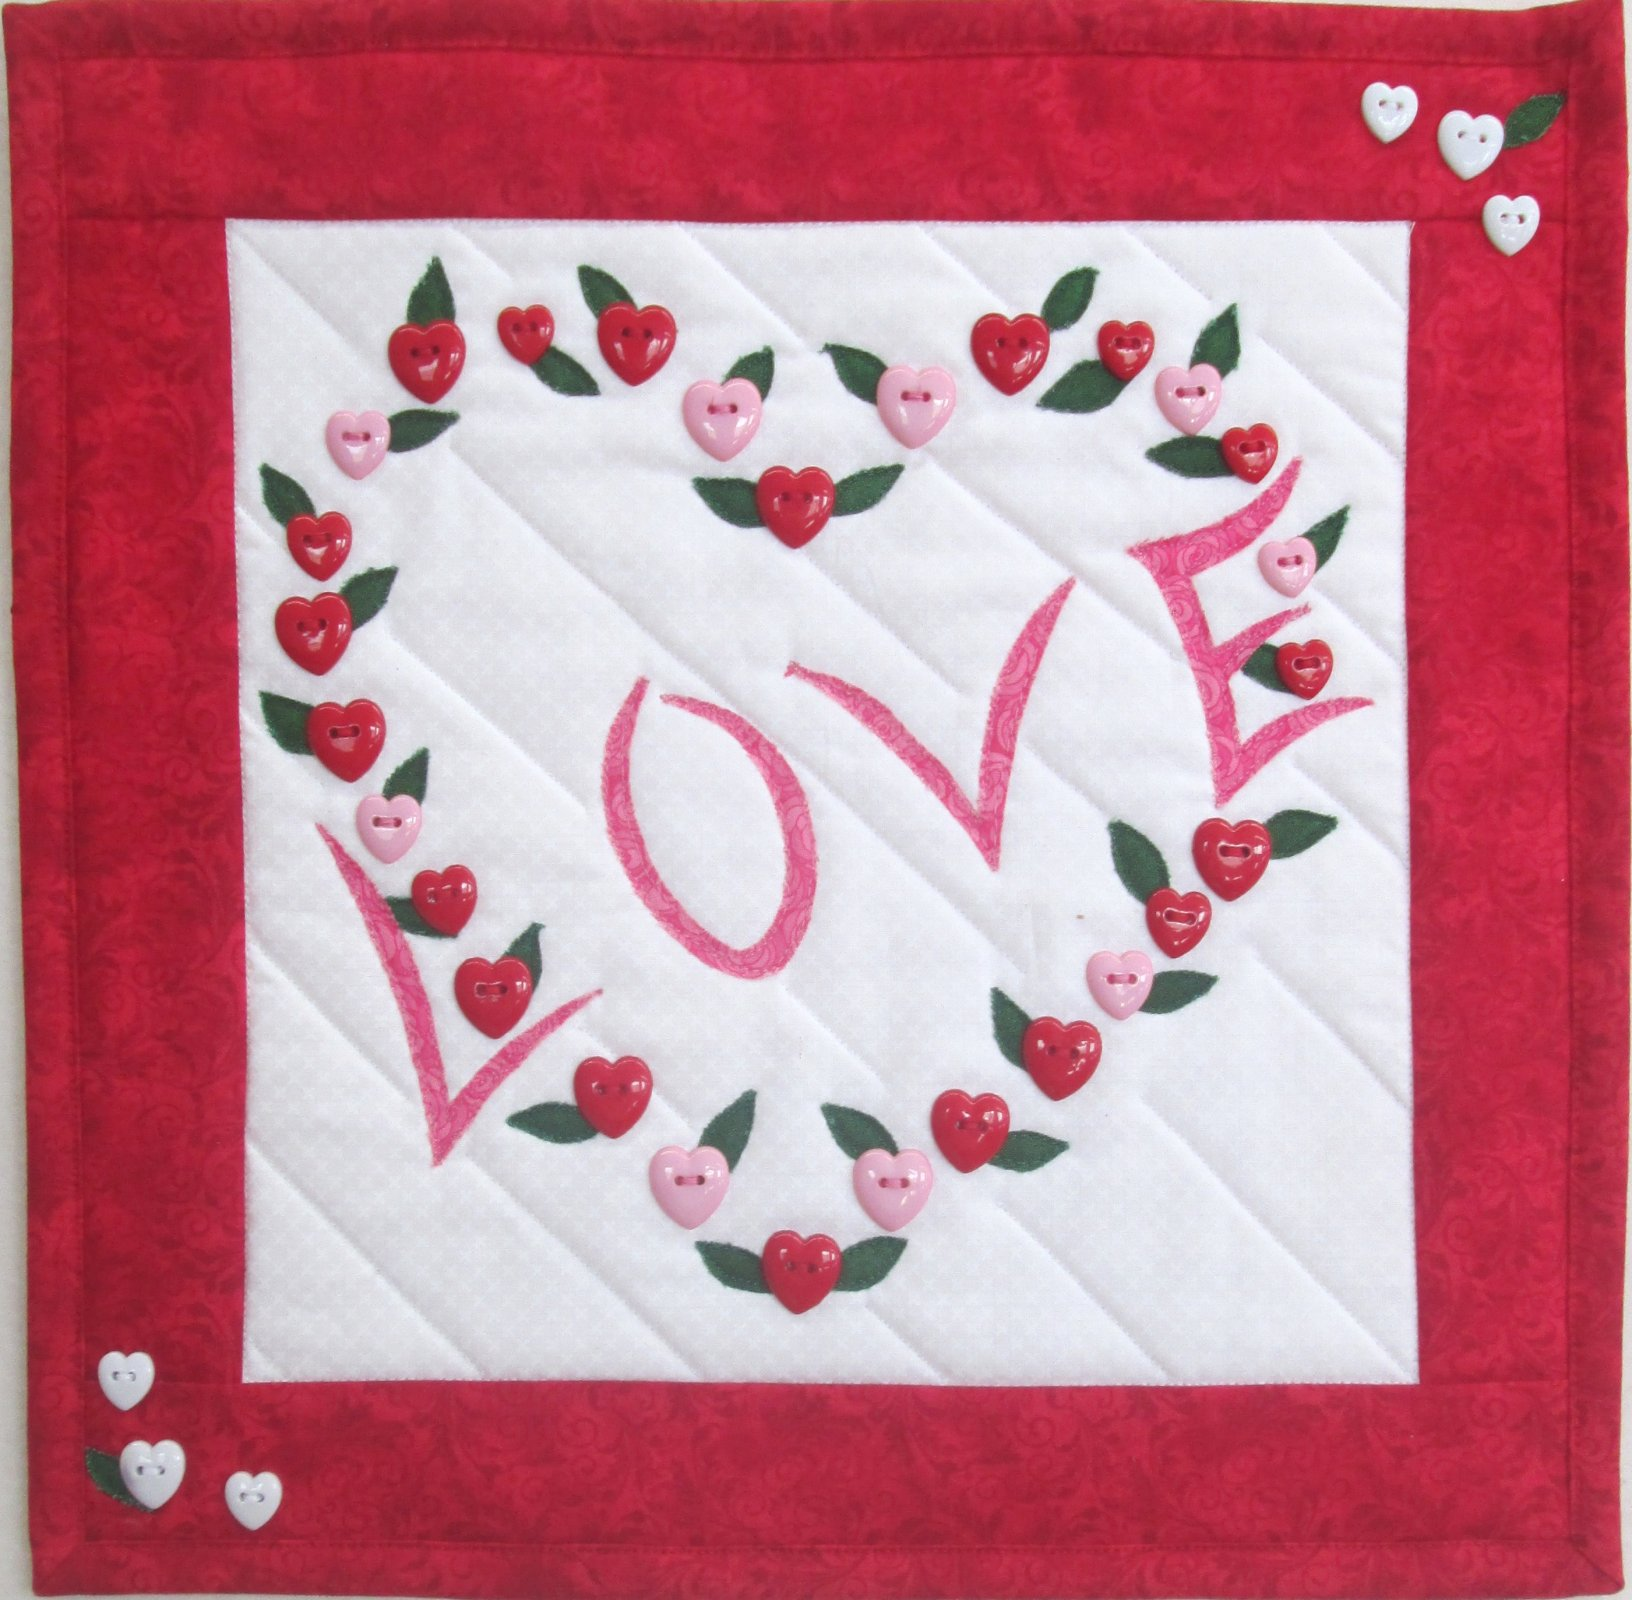 Love Hearts Wall Hanging Kit 13.5 x 13.5